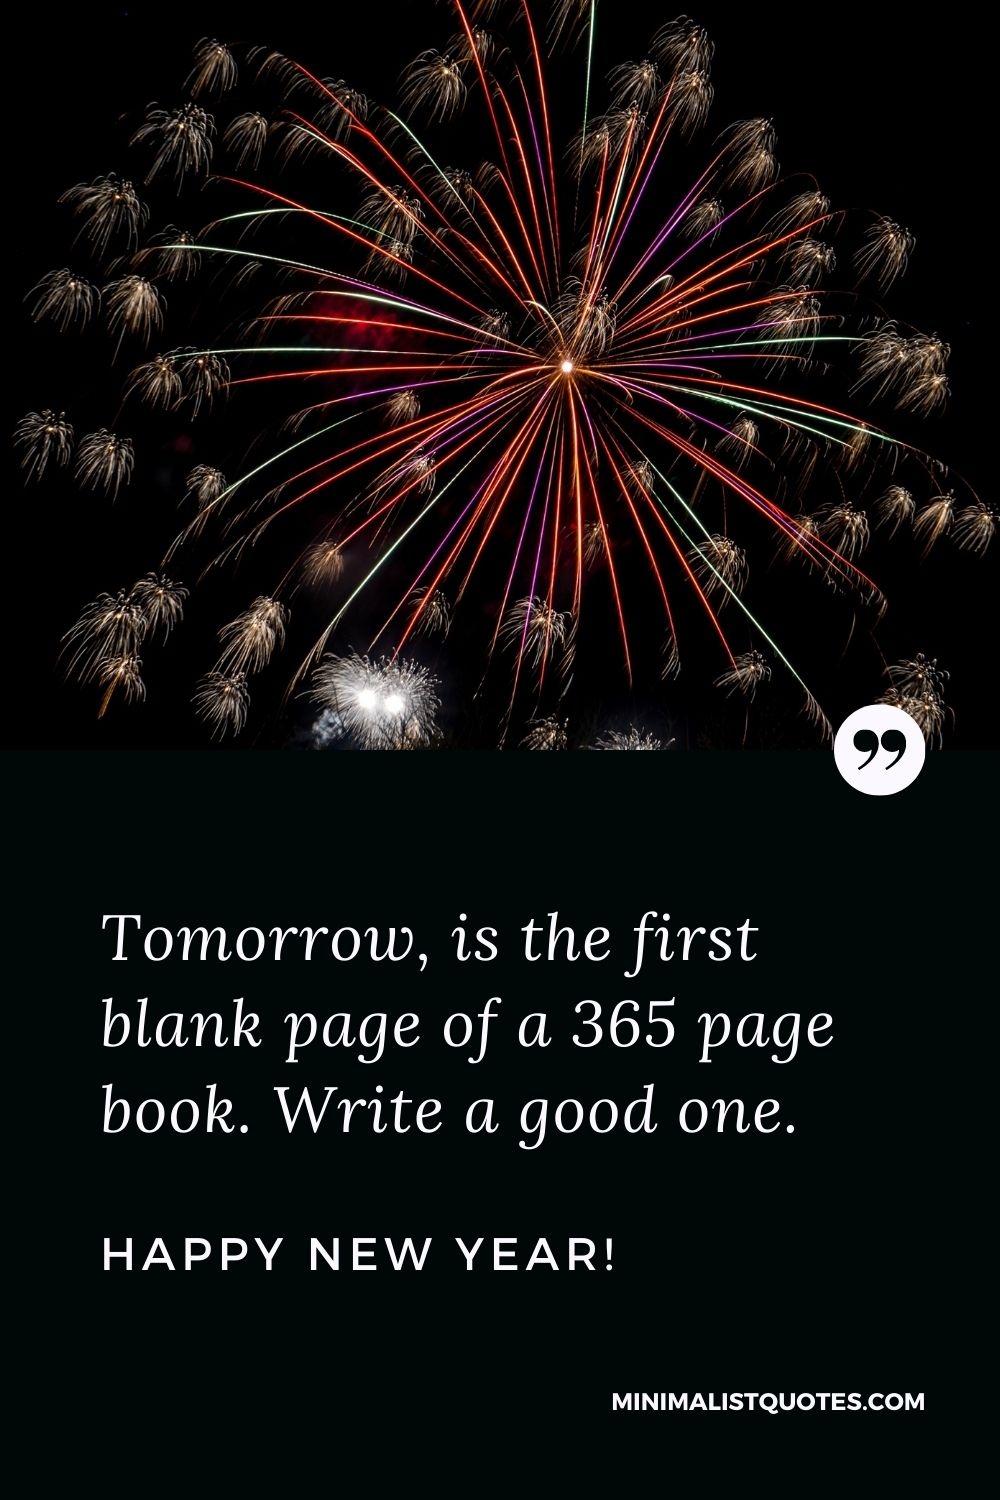 New year new beginning quote: Tomorrow is the first blank page of a 365 page book. Write a good one. Happy New Year!